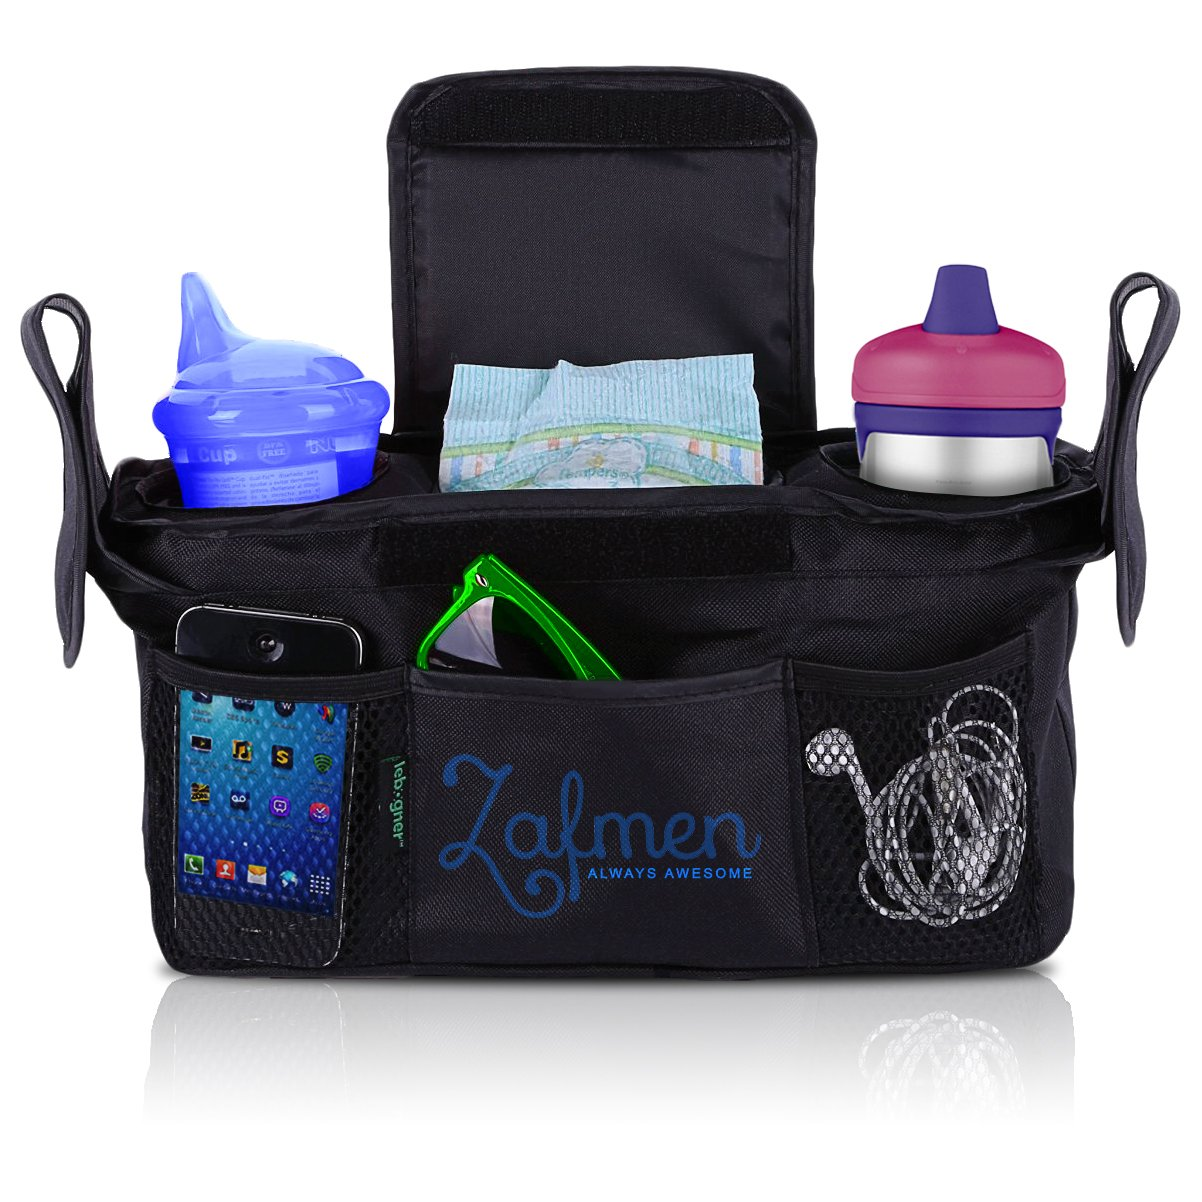 Stroller Organizer with Bonus Shoulder Strap - Baby Diaper Bag – Baby Accessory Bag – Baby Shower Gift – Water Proof & Eco-Friendly baby bag – Fits all Stroller – Stroller Organizer Baby Jogger by Zafmen (Image #1)